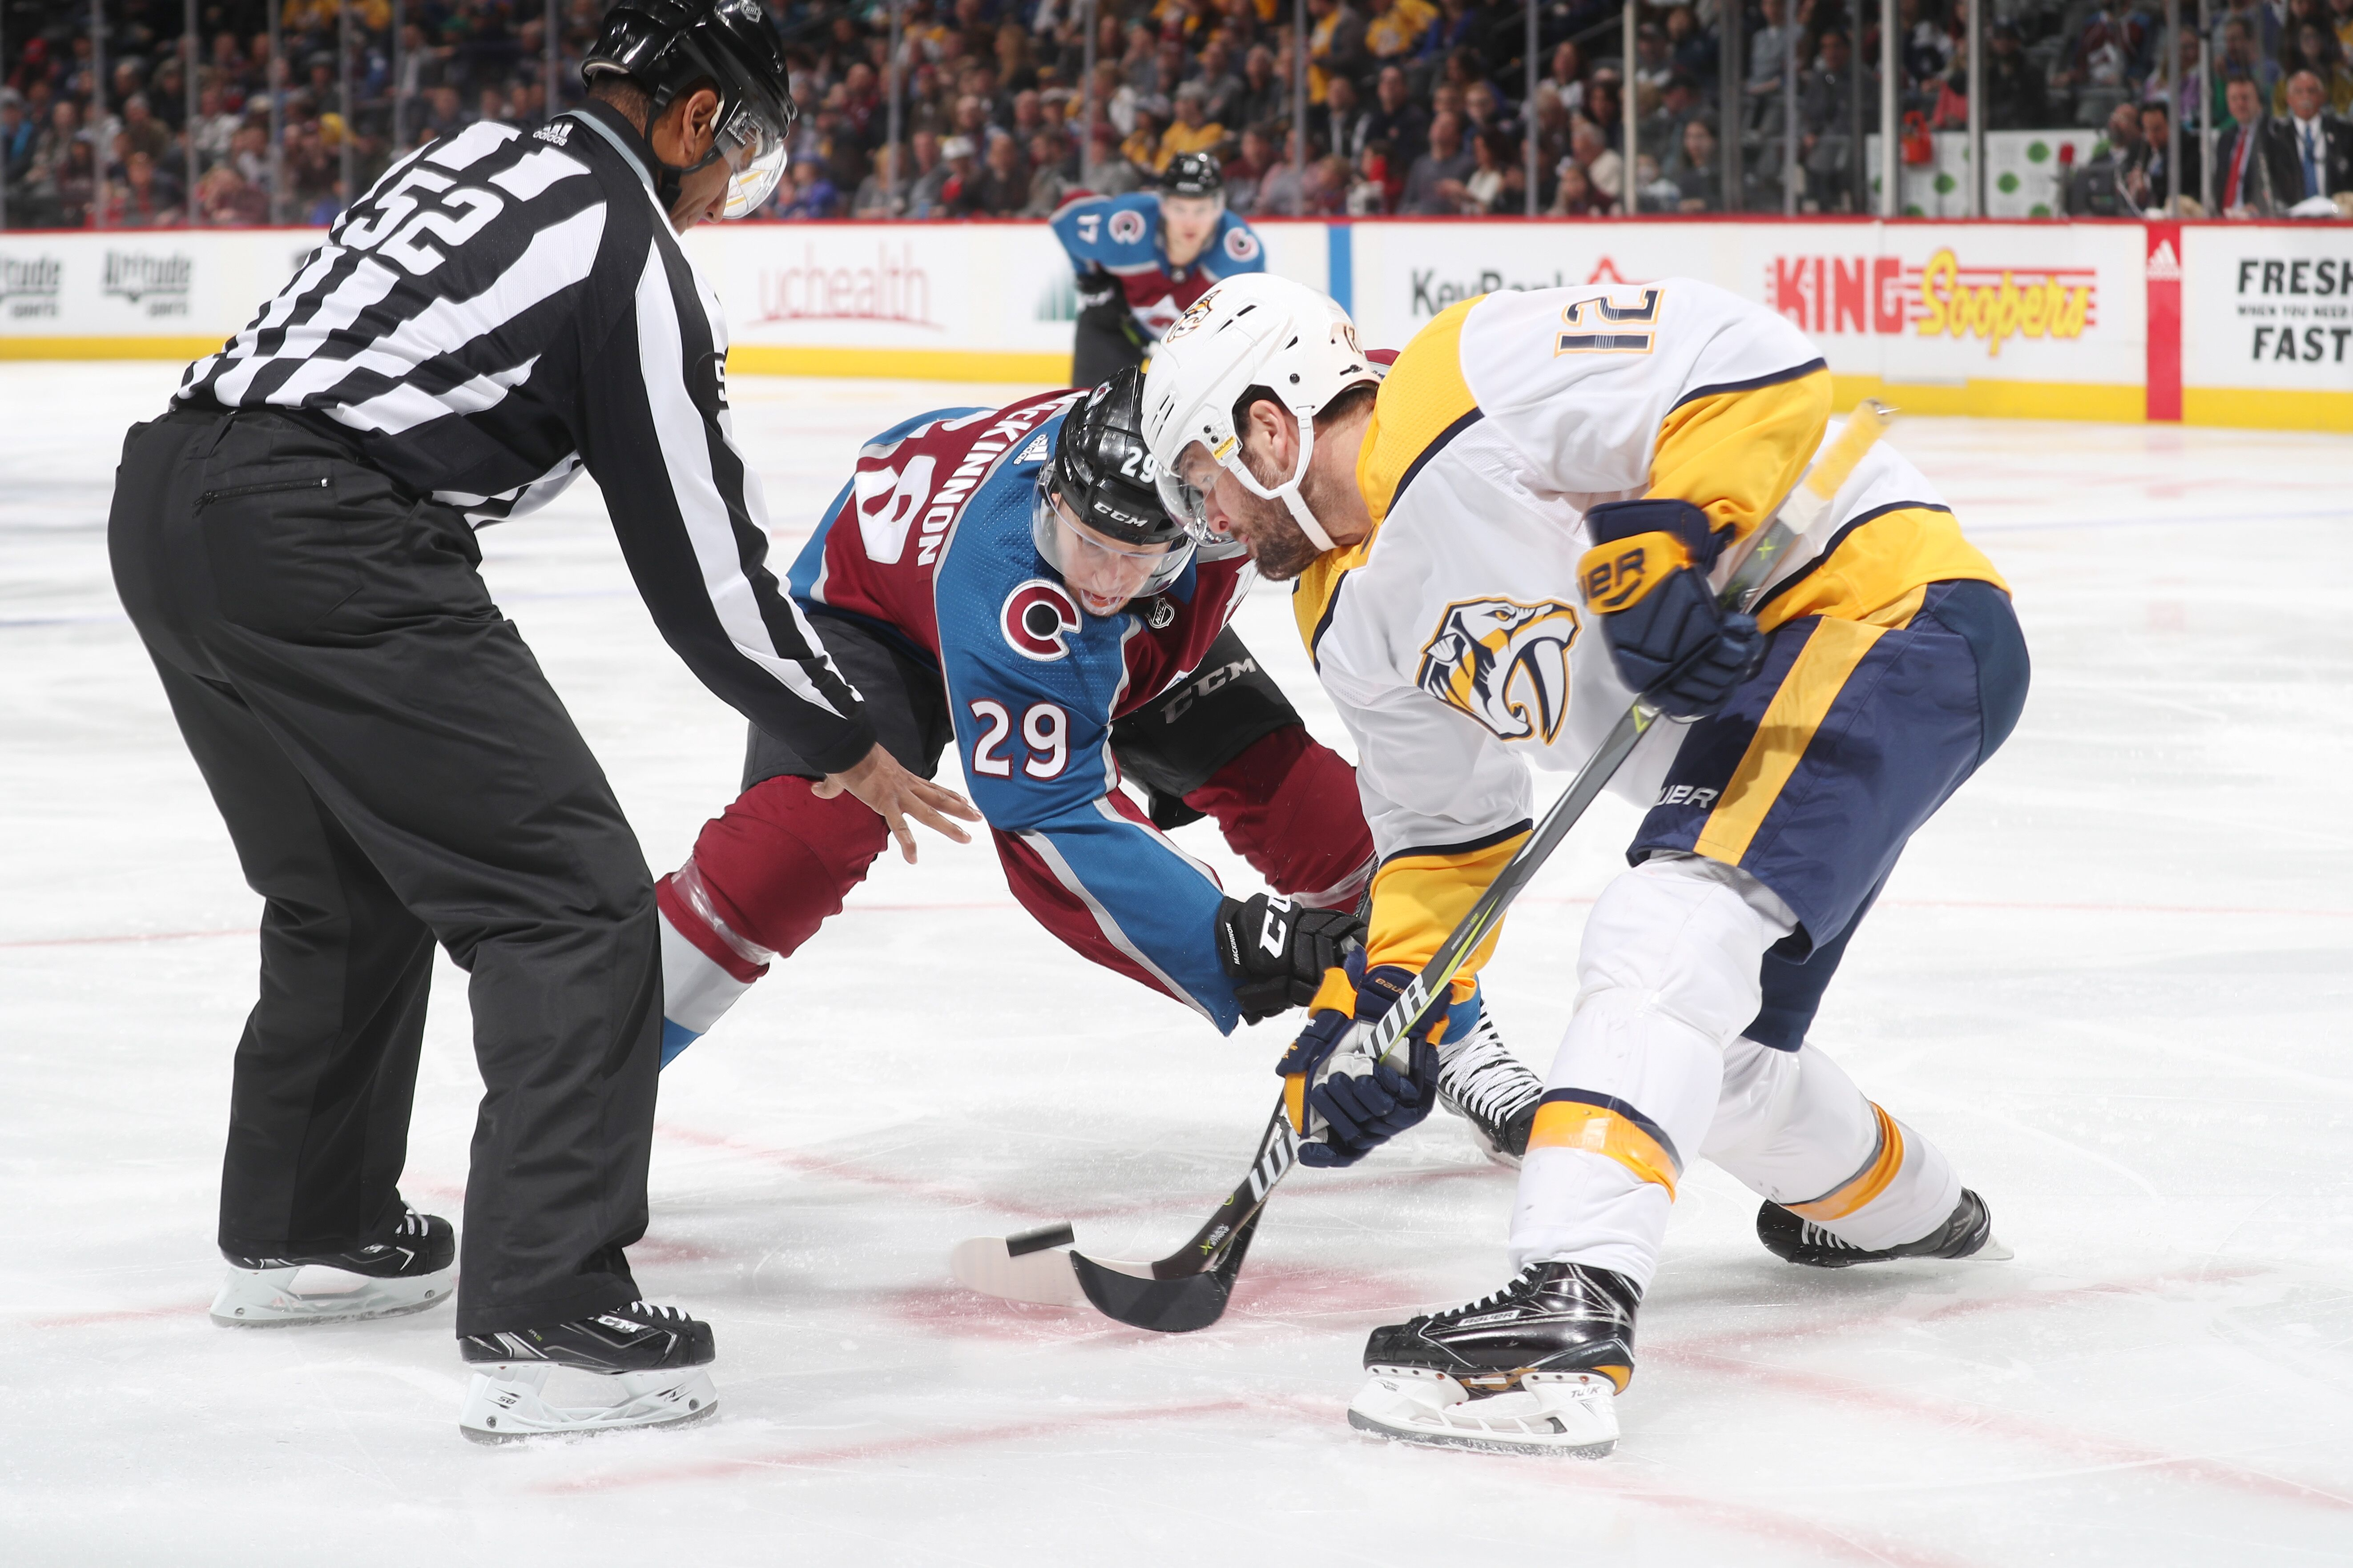 932939530-nashville-predators-v-colorado-avalanche.jpg